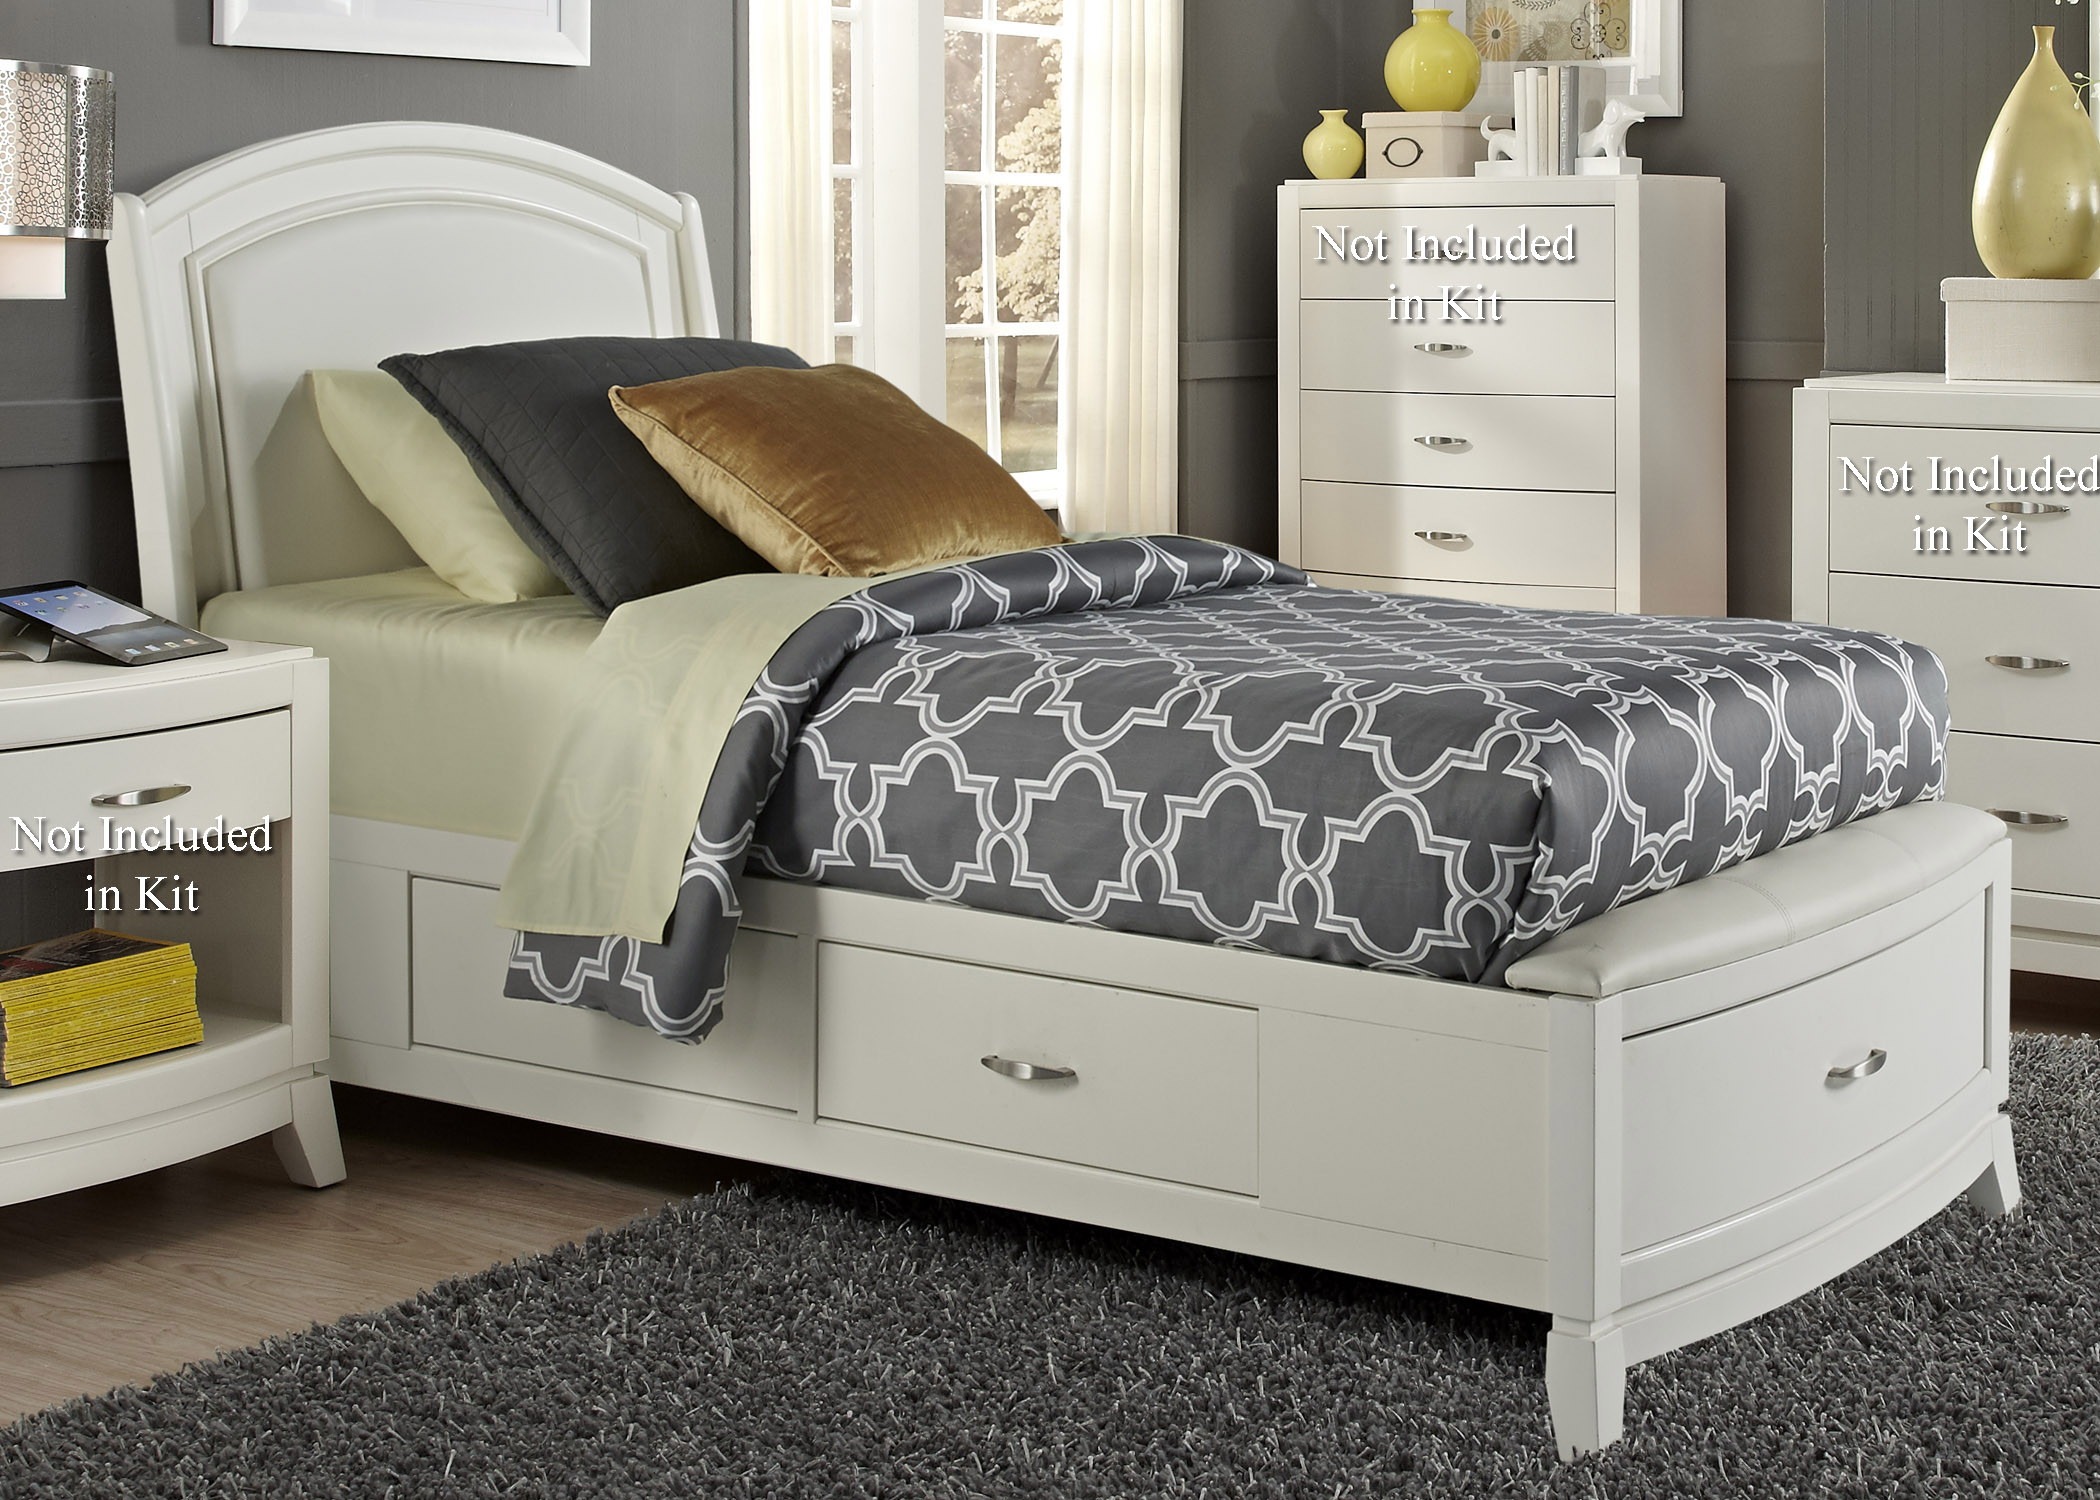 Liberty Furniture Avalon II Full One Sided Storage Bed  - Item Number: 205-YBR-F1S